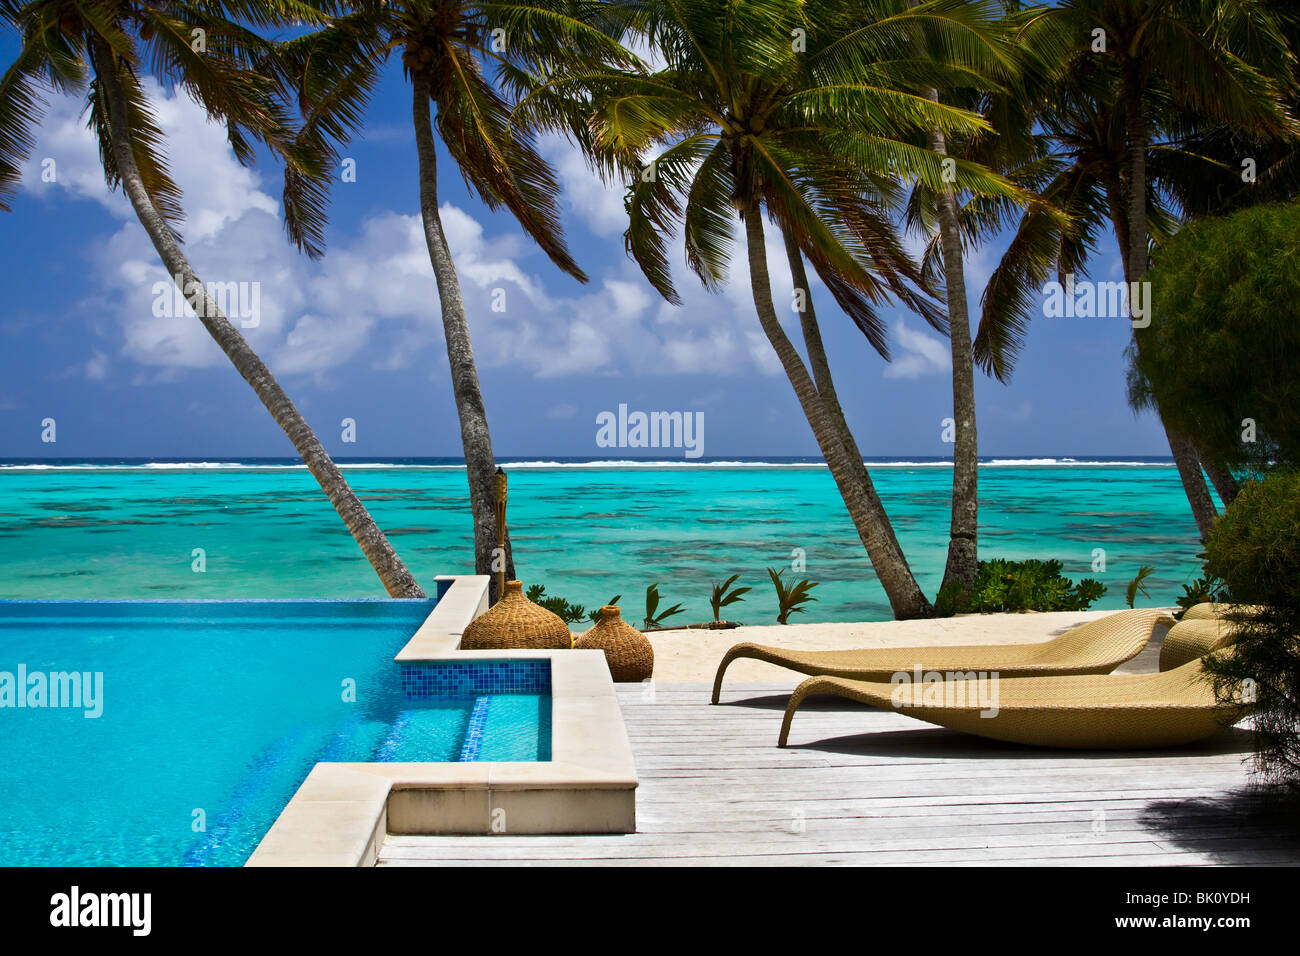 Resort on Rarotonga, Cook Islands - Stock Image